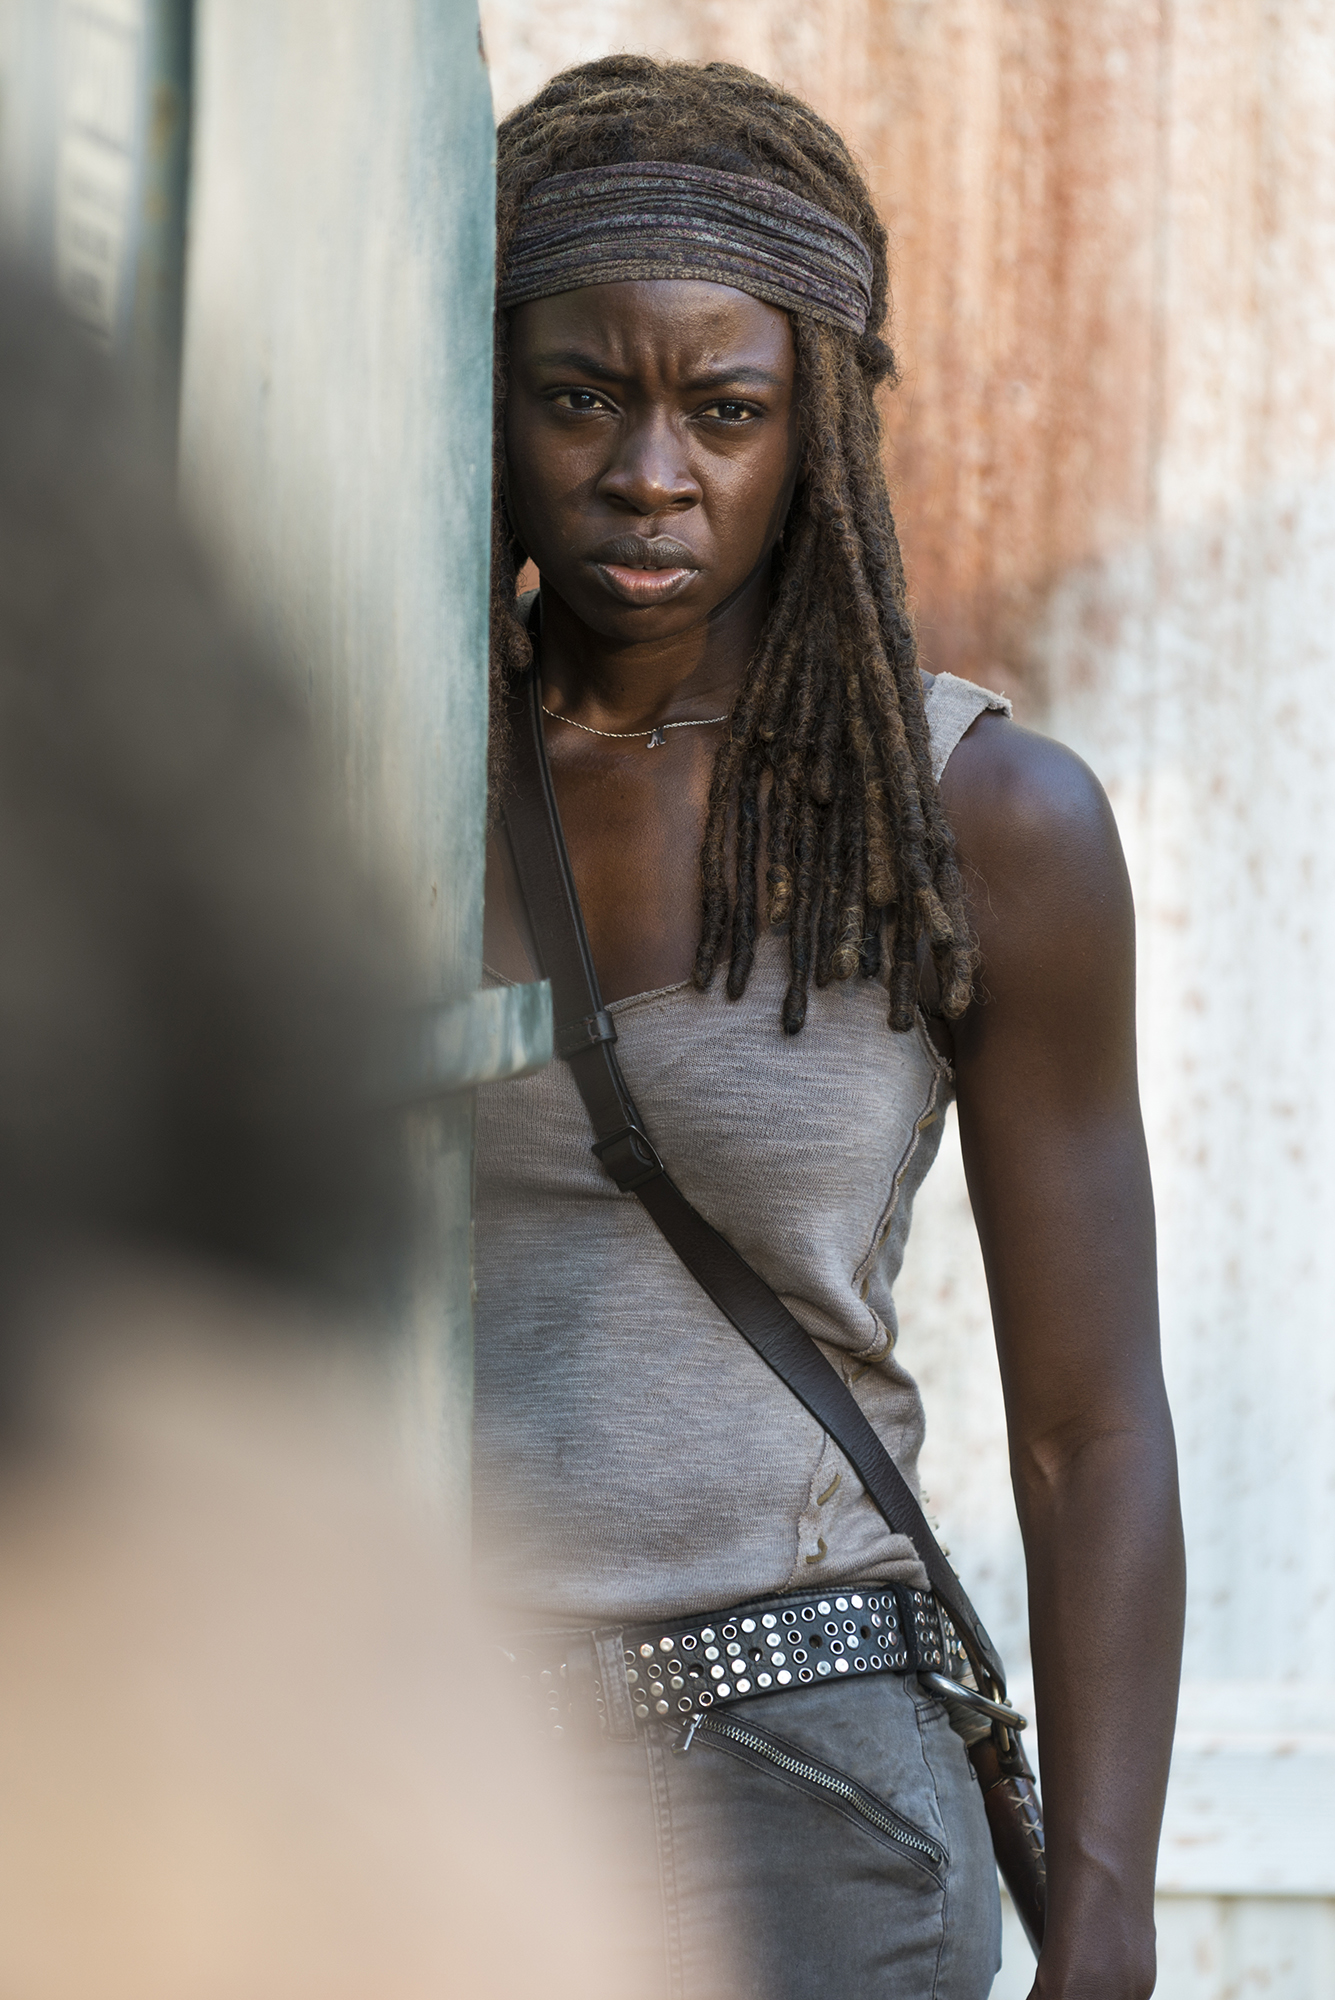 Danai Gurira as Michonne - The Walking Dead, Season 7, Episode 12